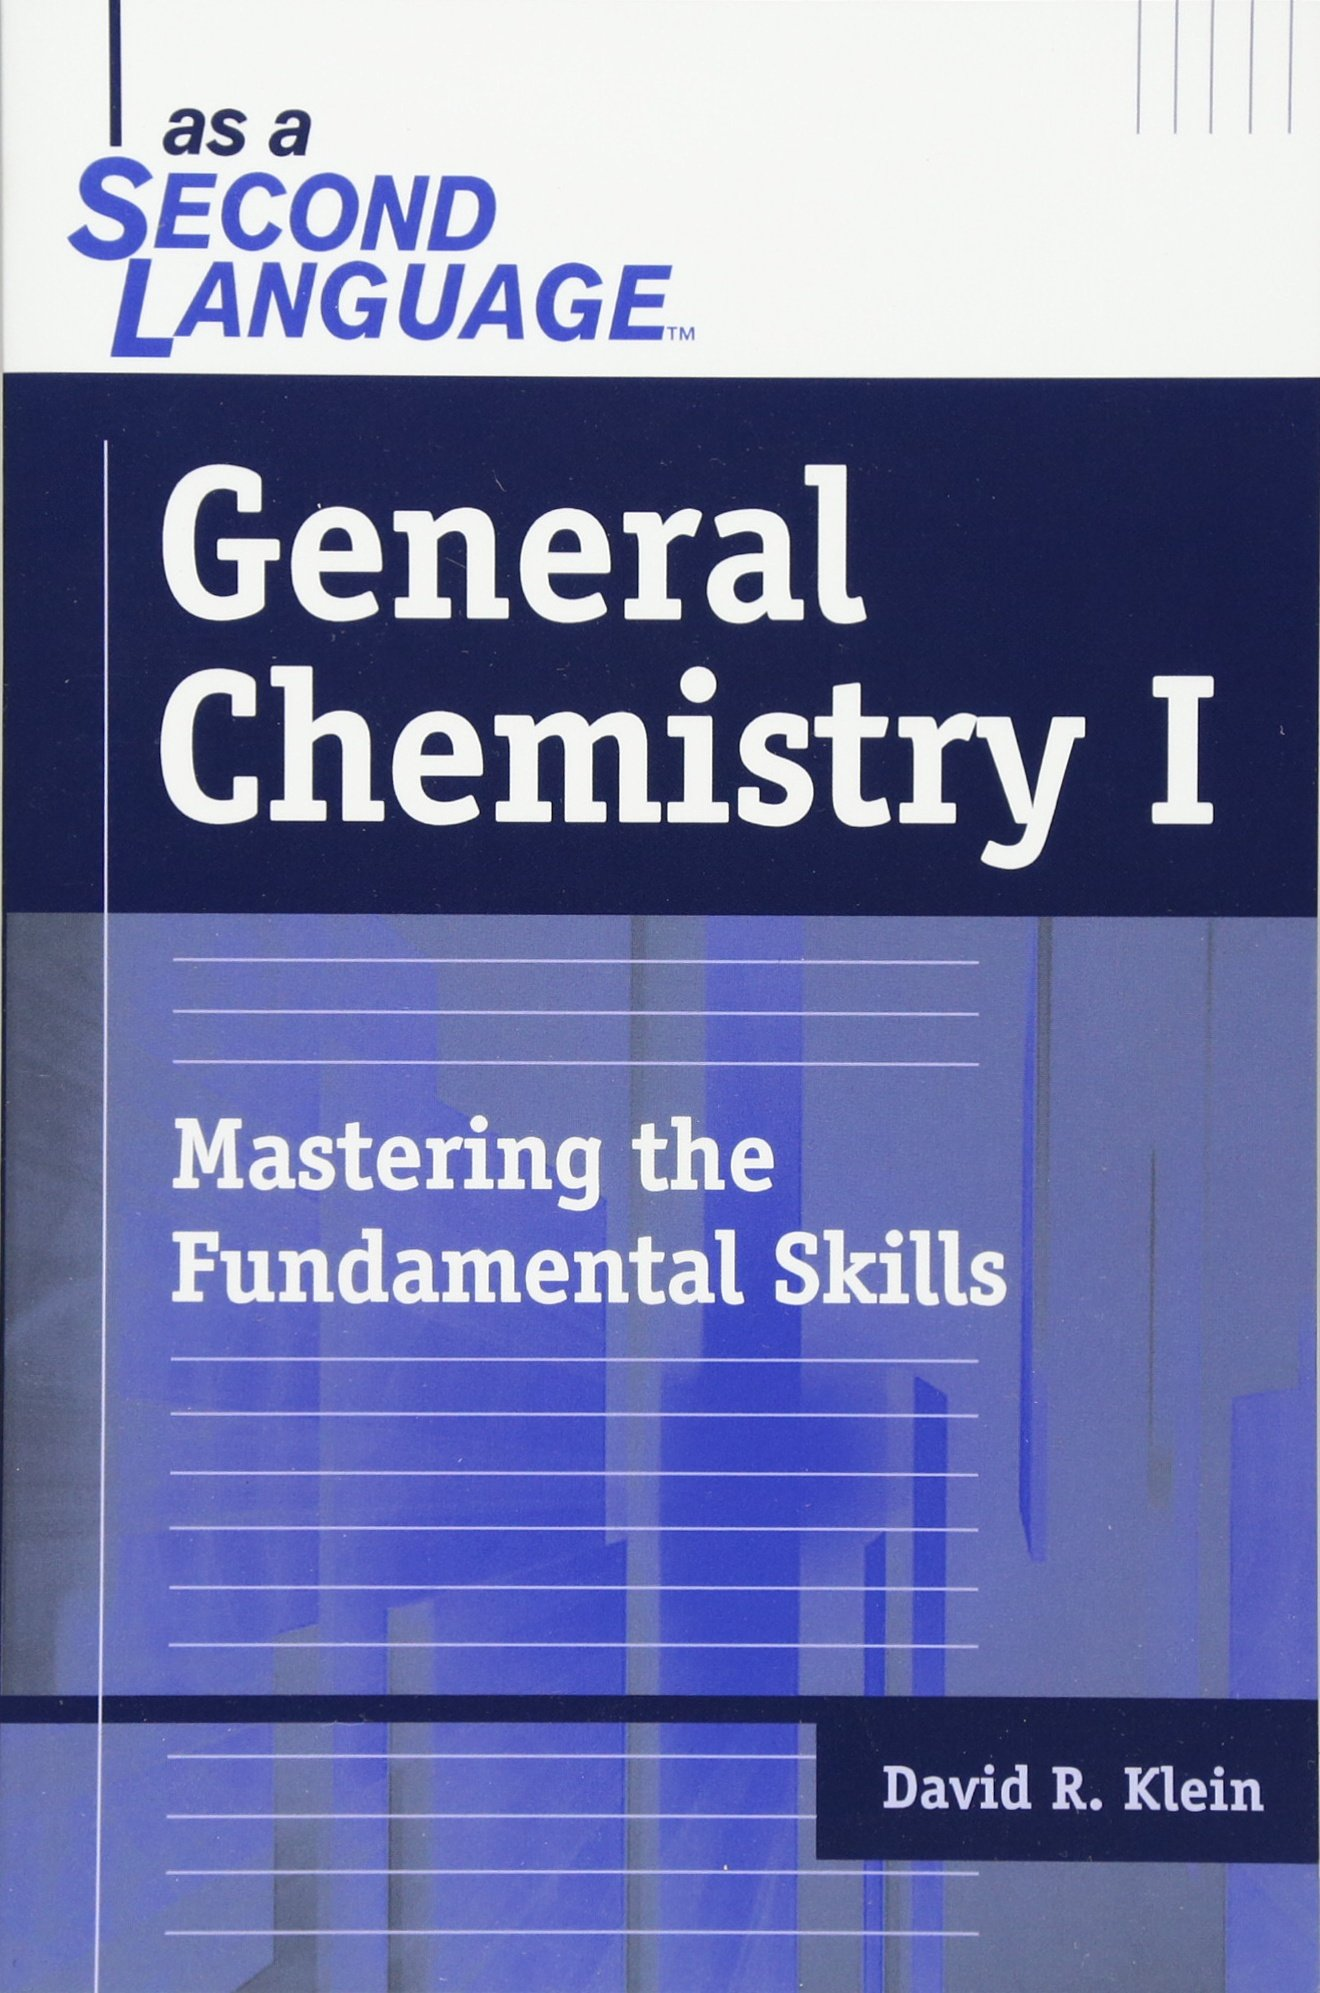 General Chemistry I as a Second Language: Mastering the Fundamental Skills by Wiley